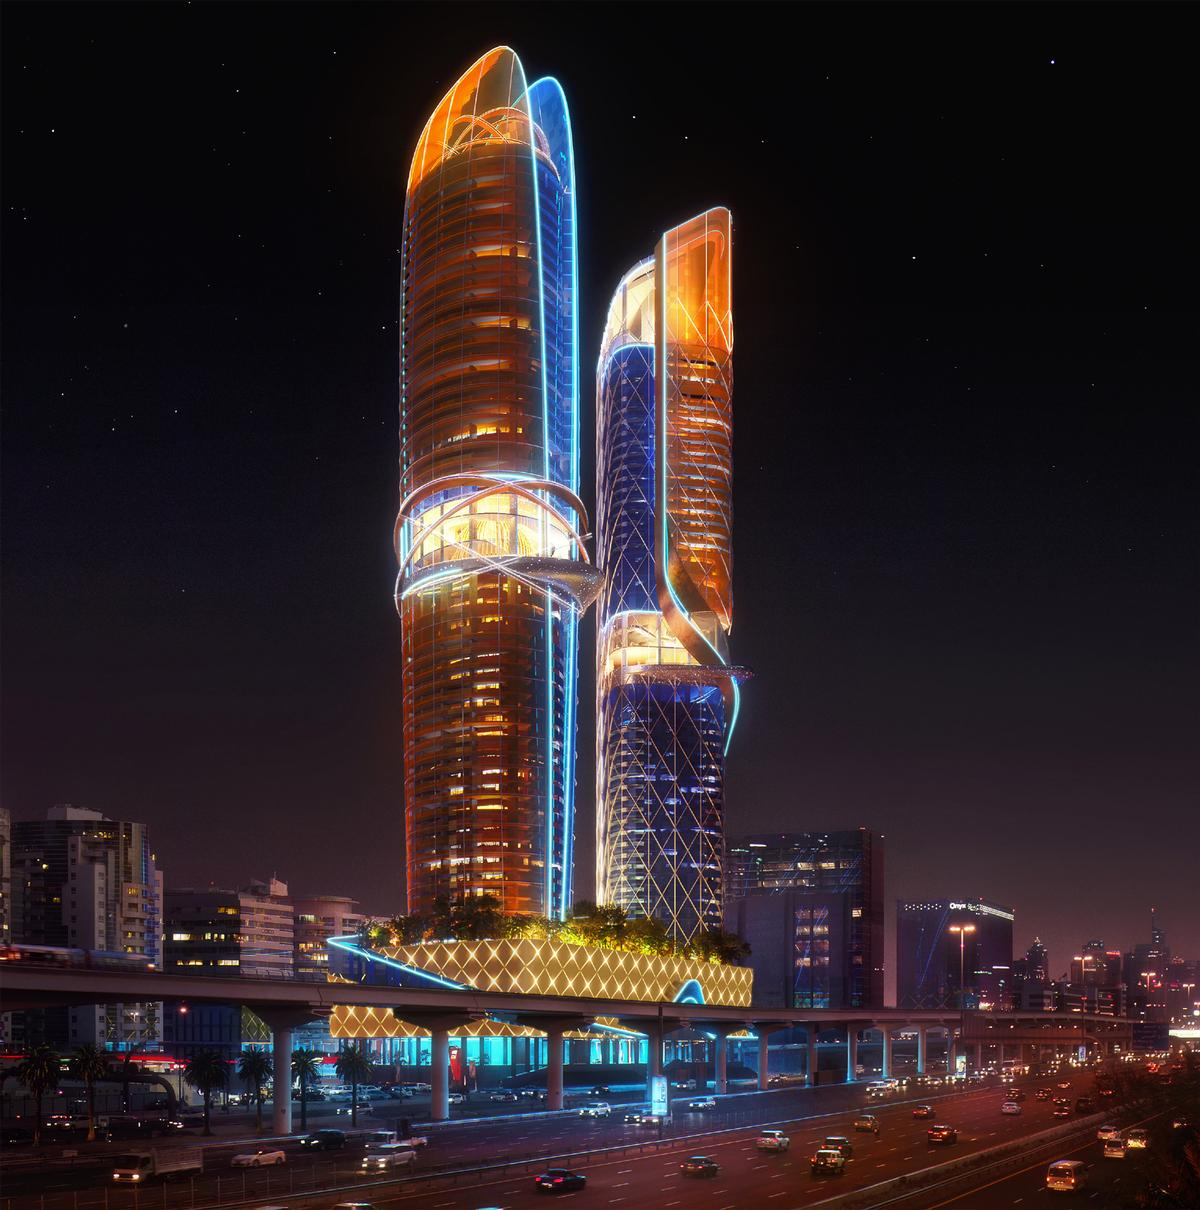 The Rosemont Hotel and Residences will be operated by Hilton / ZAS Architects